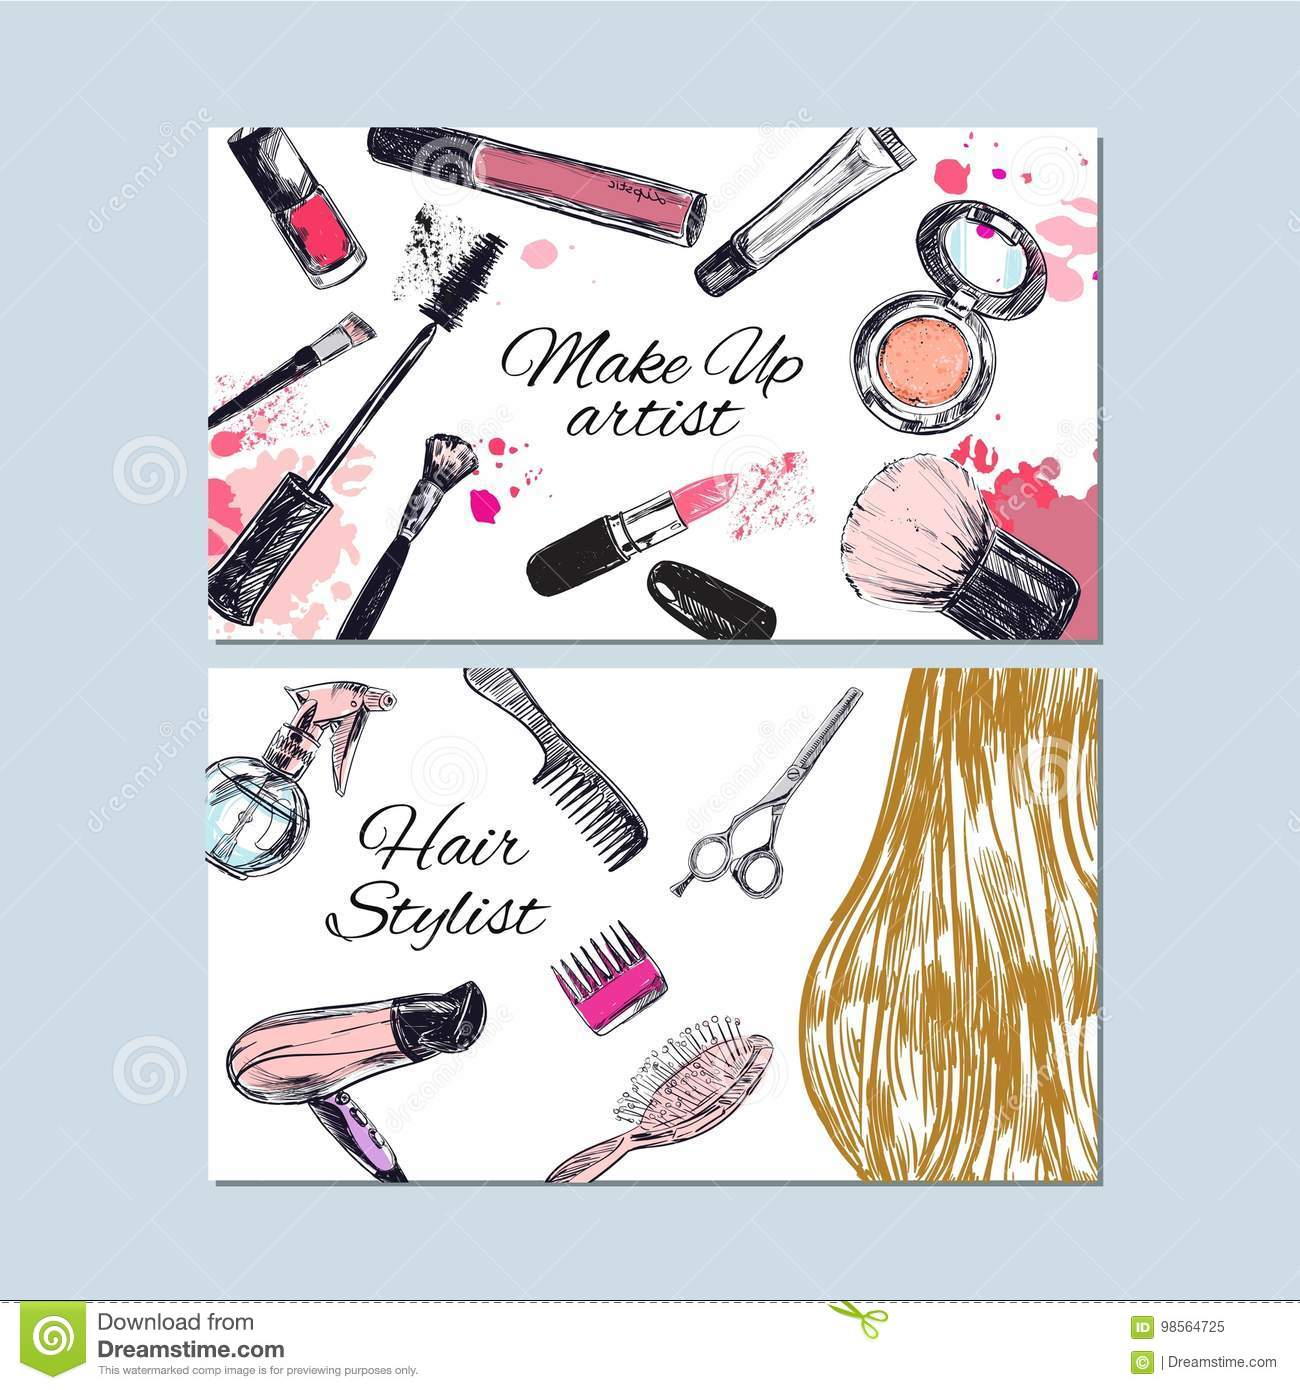 Make up artist and hair stylist business cards beauty and fashion make up artist and hair stylist business cards beauty and fashion vector hand draw friedricerecipe Gallery